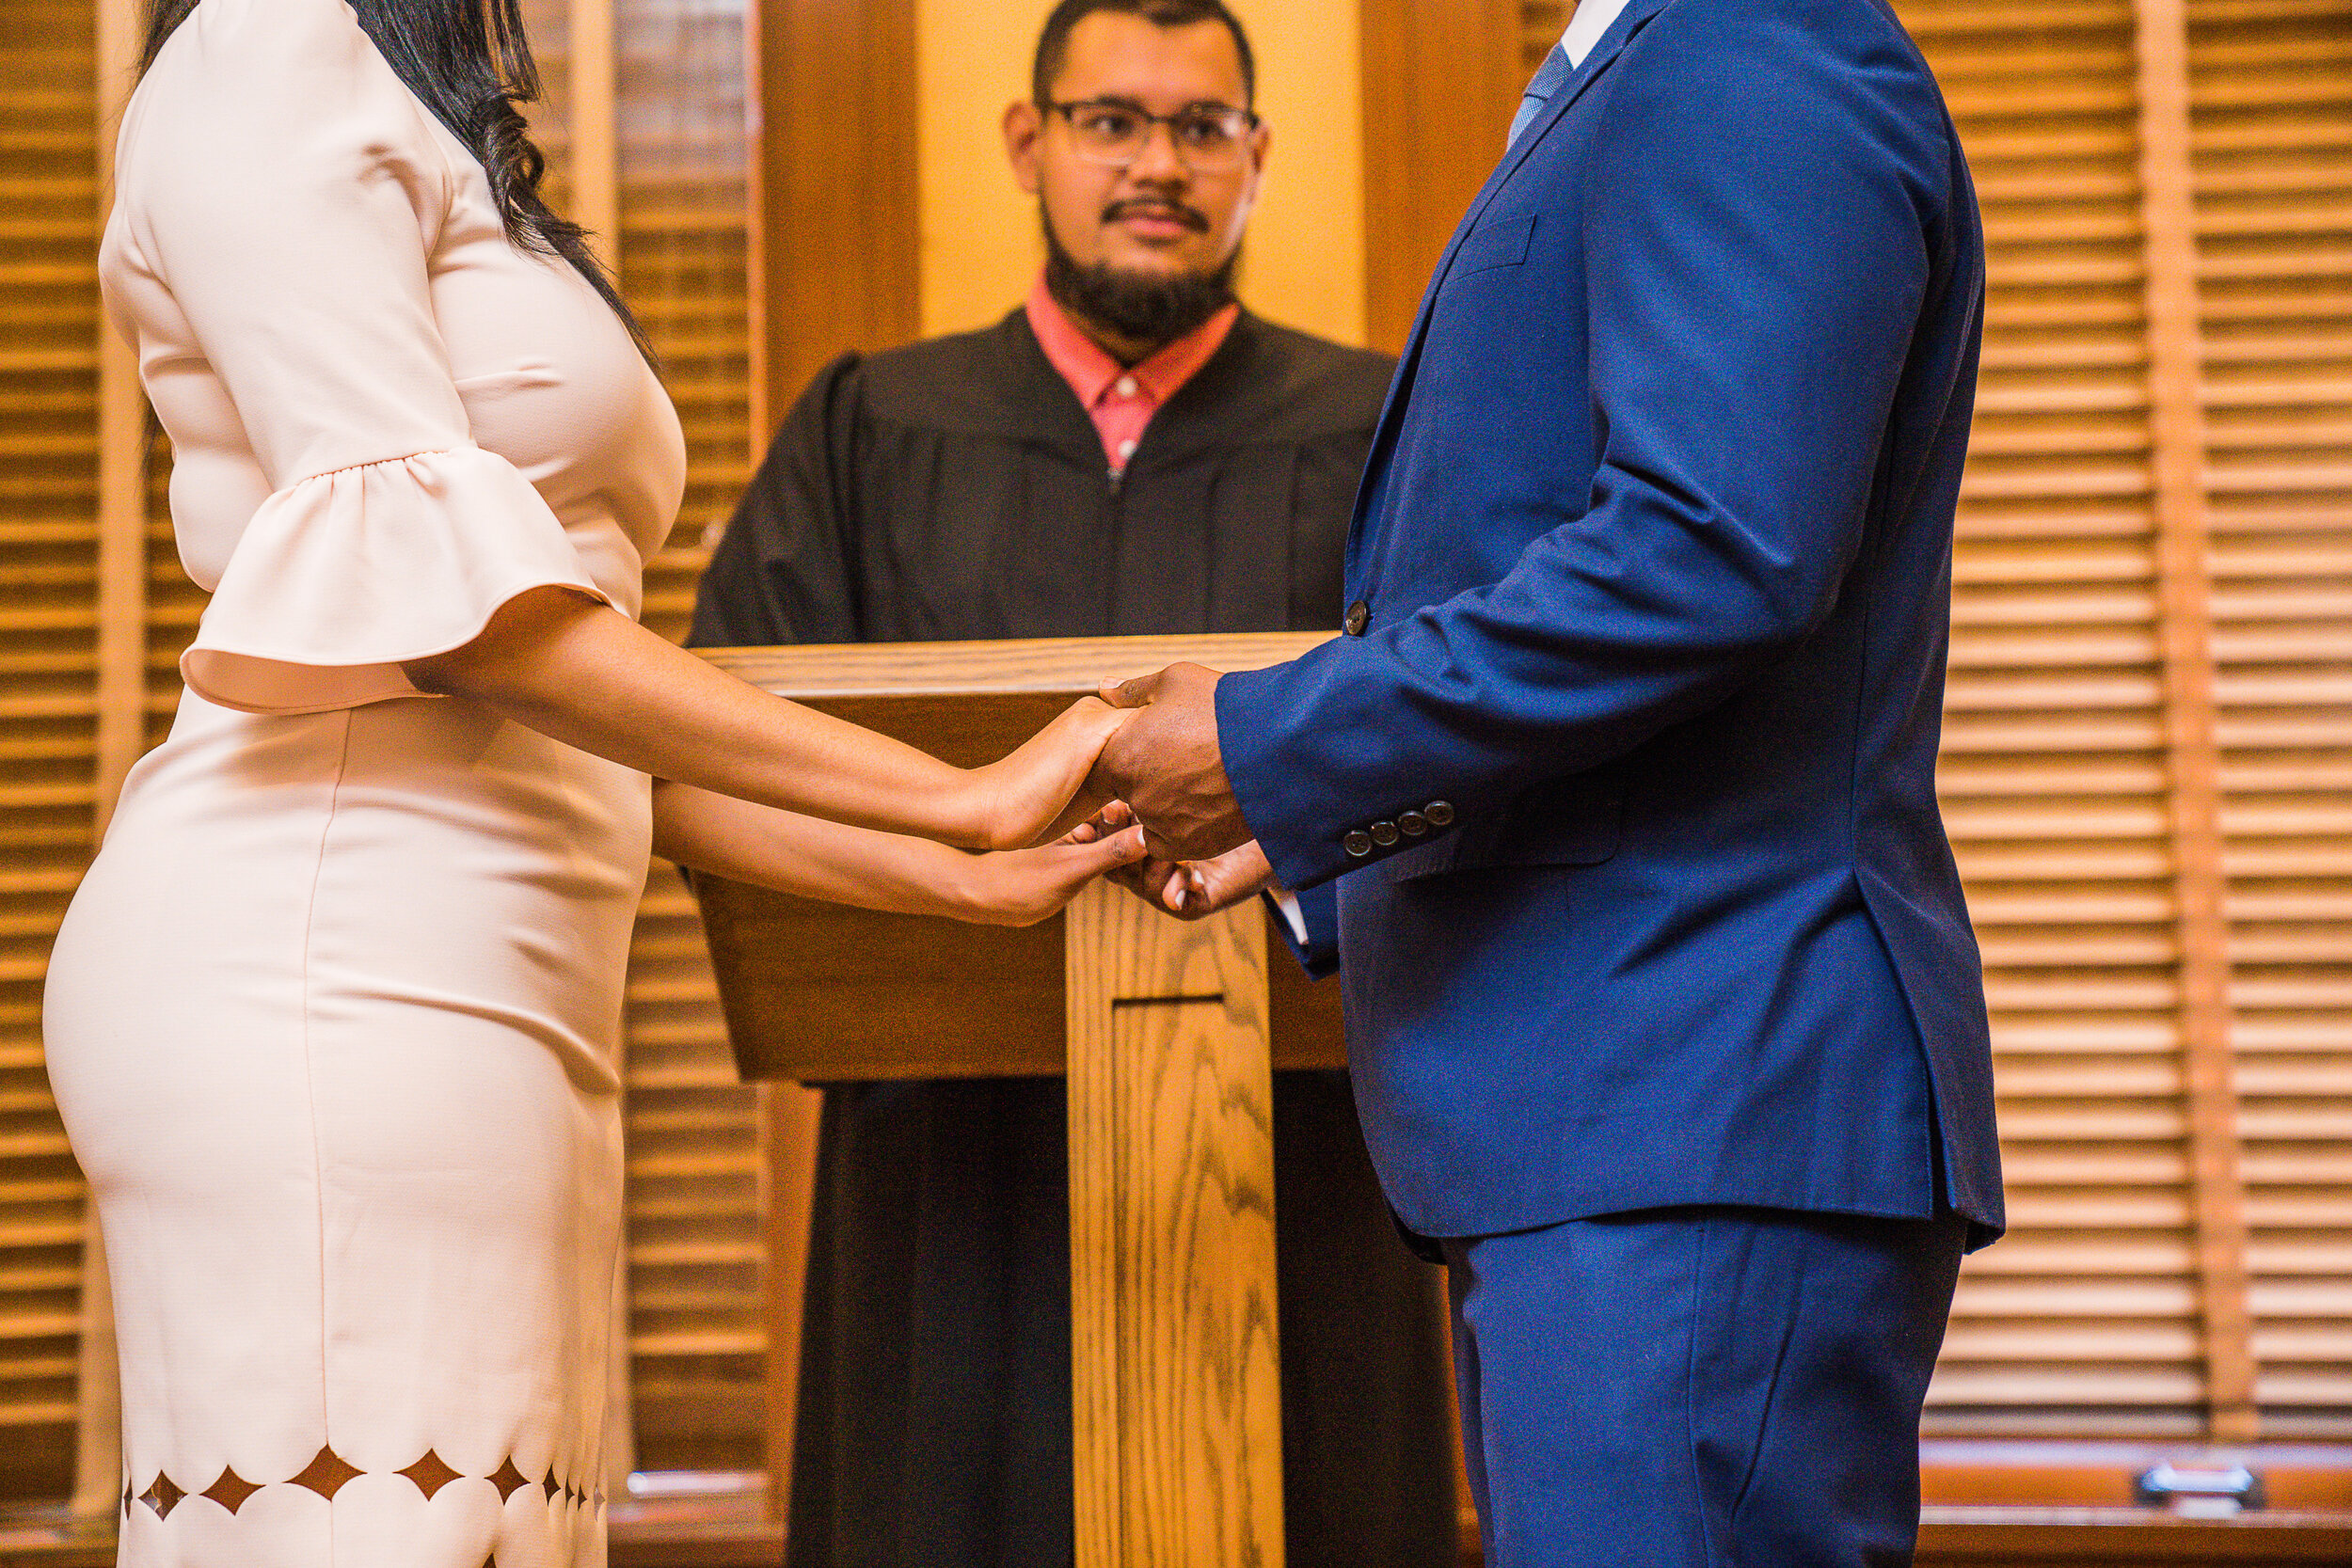 sewit-elopement-orange-county-santa-ana-courthouse-21-2.jpg